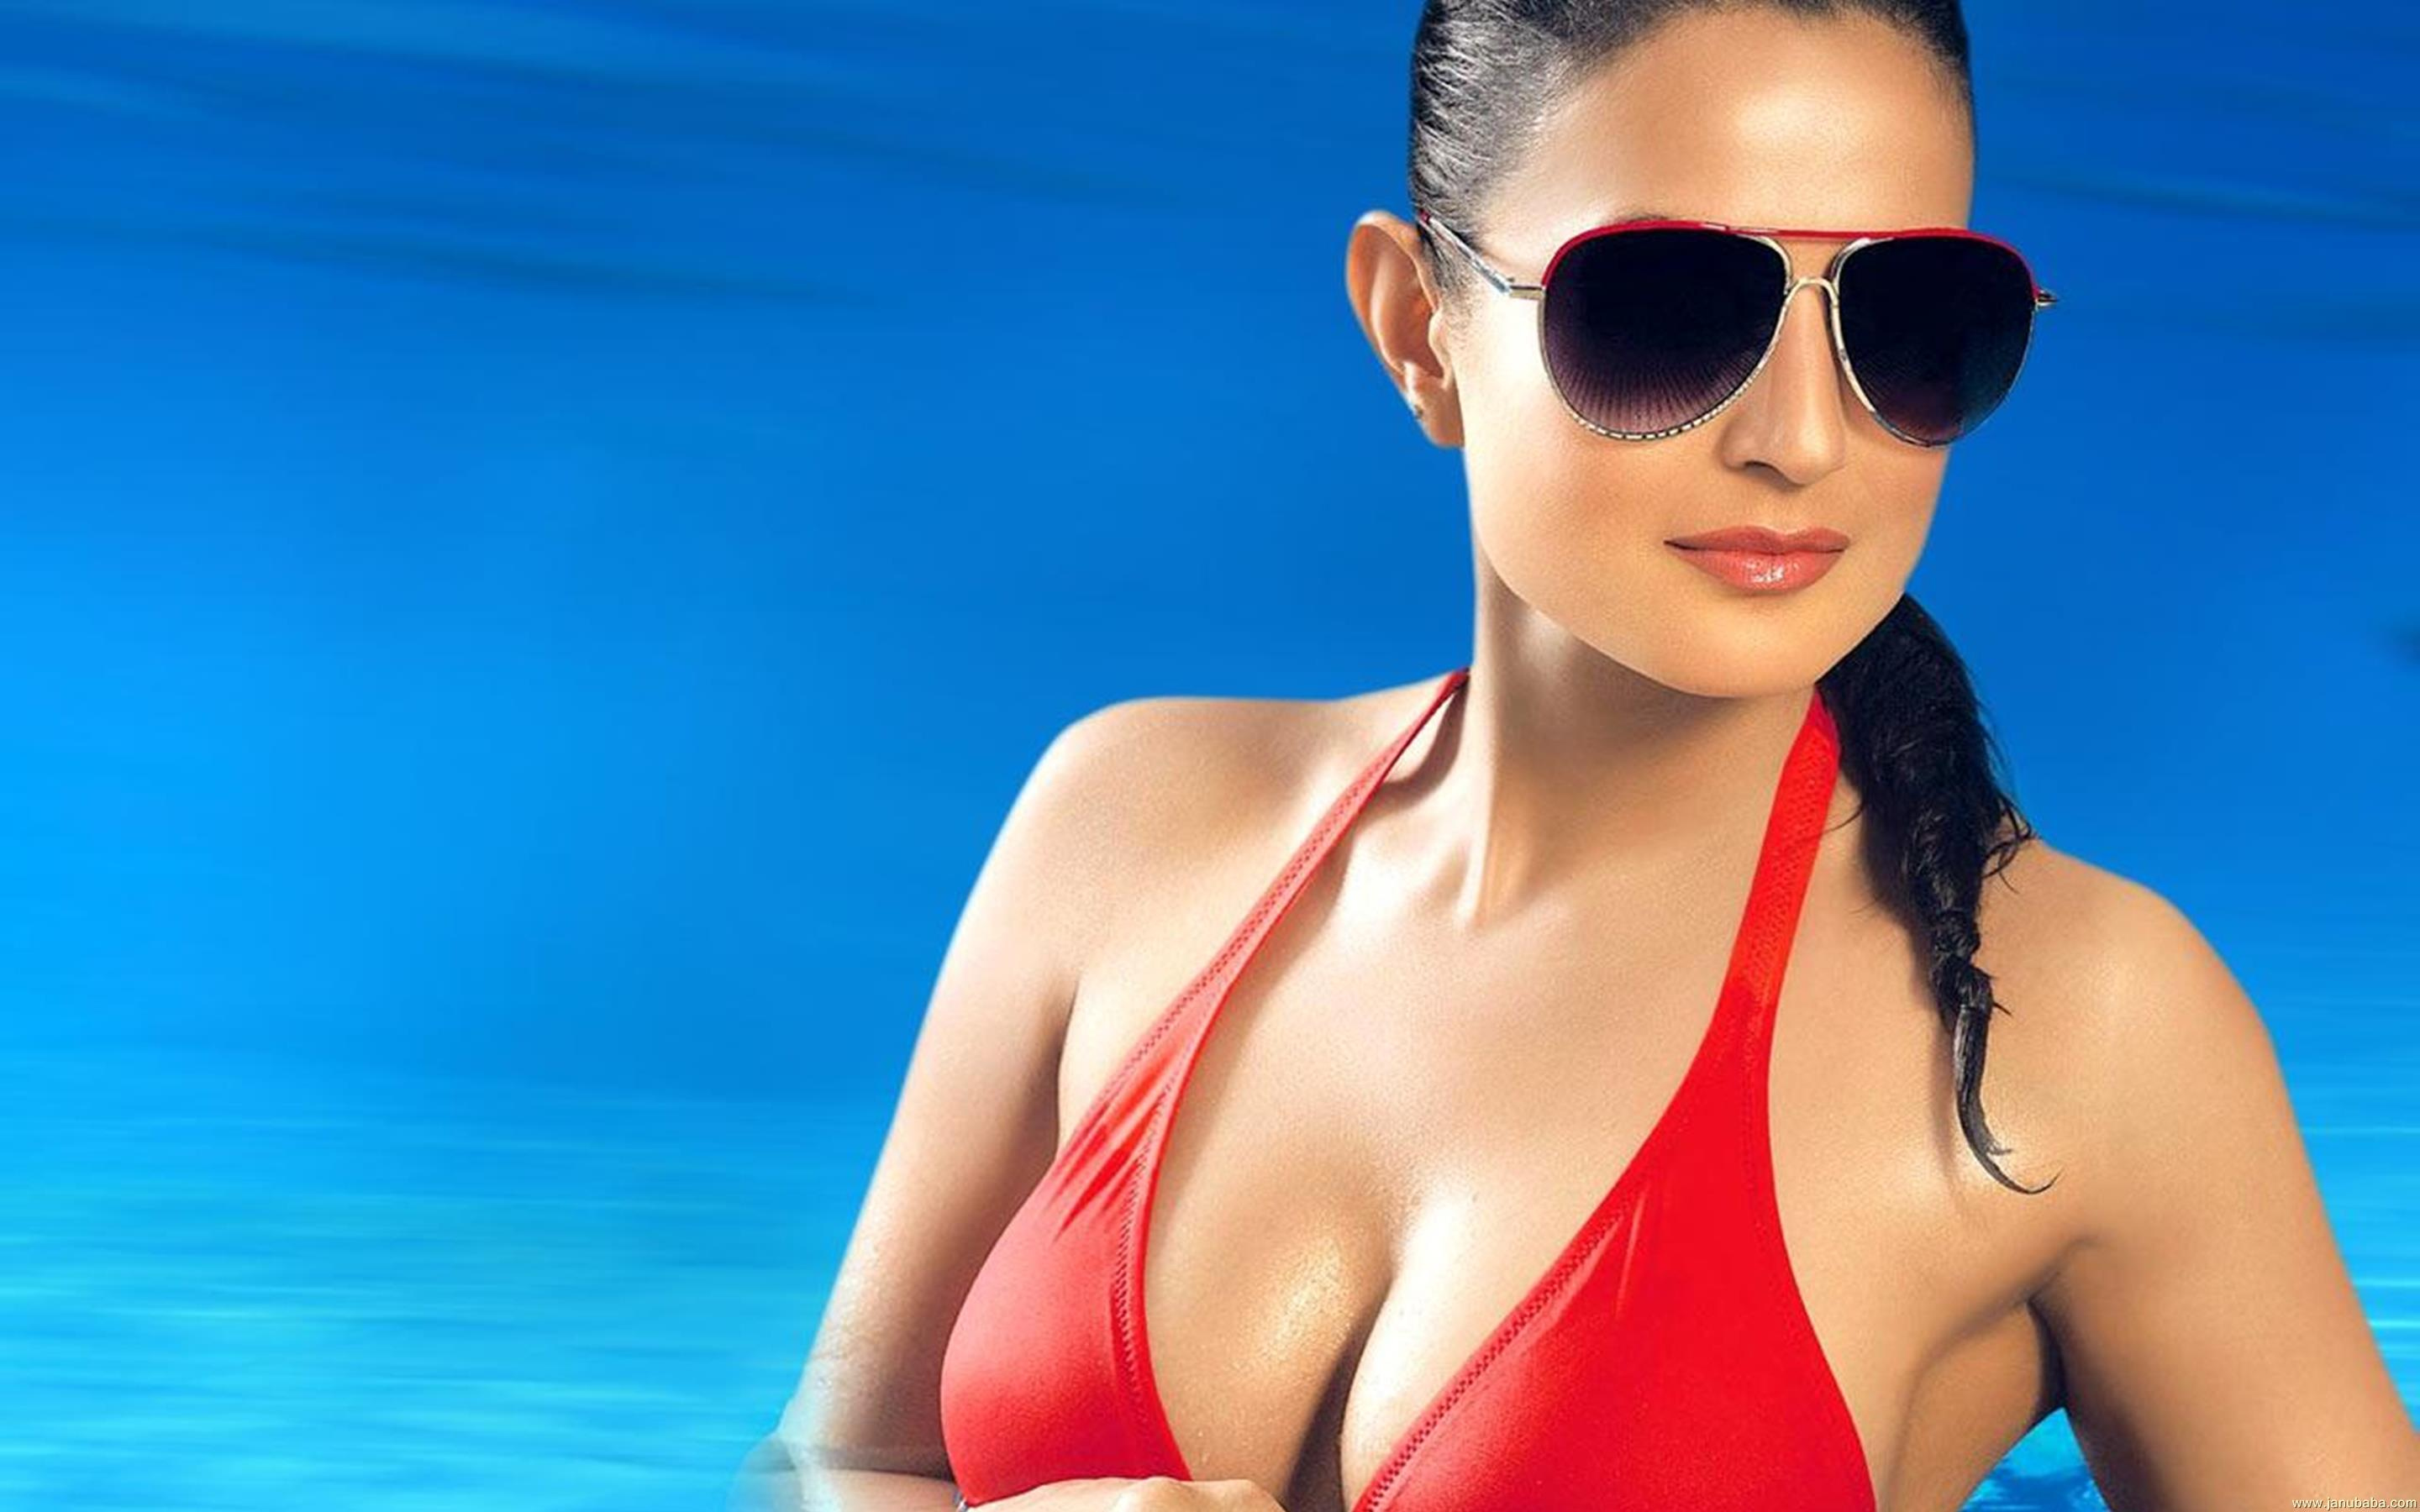 Ameesha Papael Ka Saxy Nangi Photo: Facebook Covers For Ameesha Patel [13-24] • PoPoPics.com